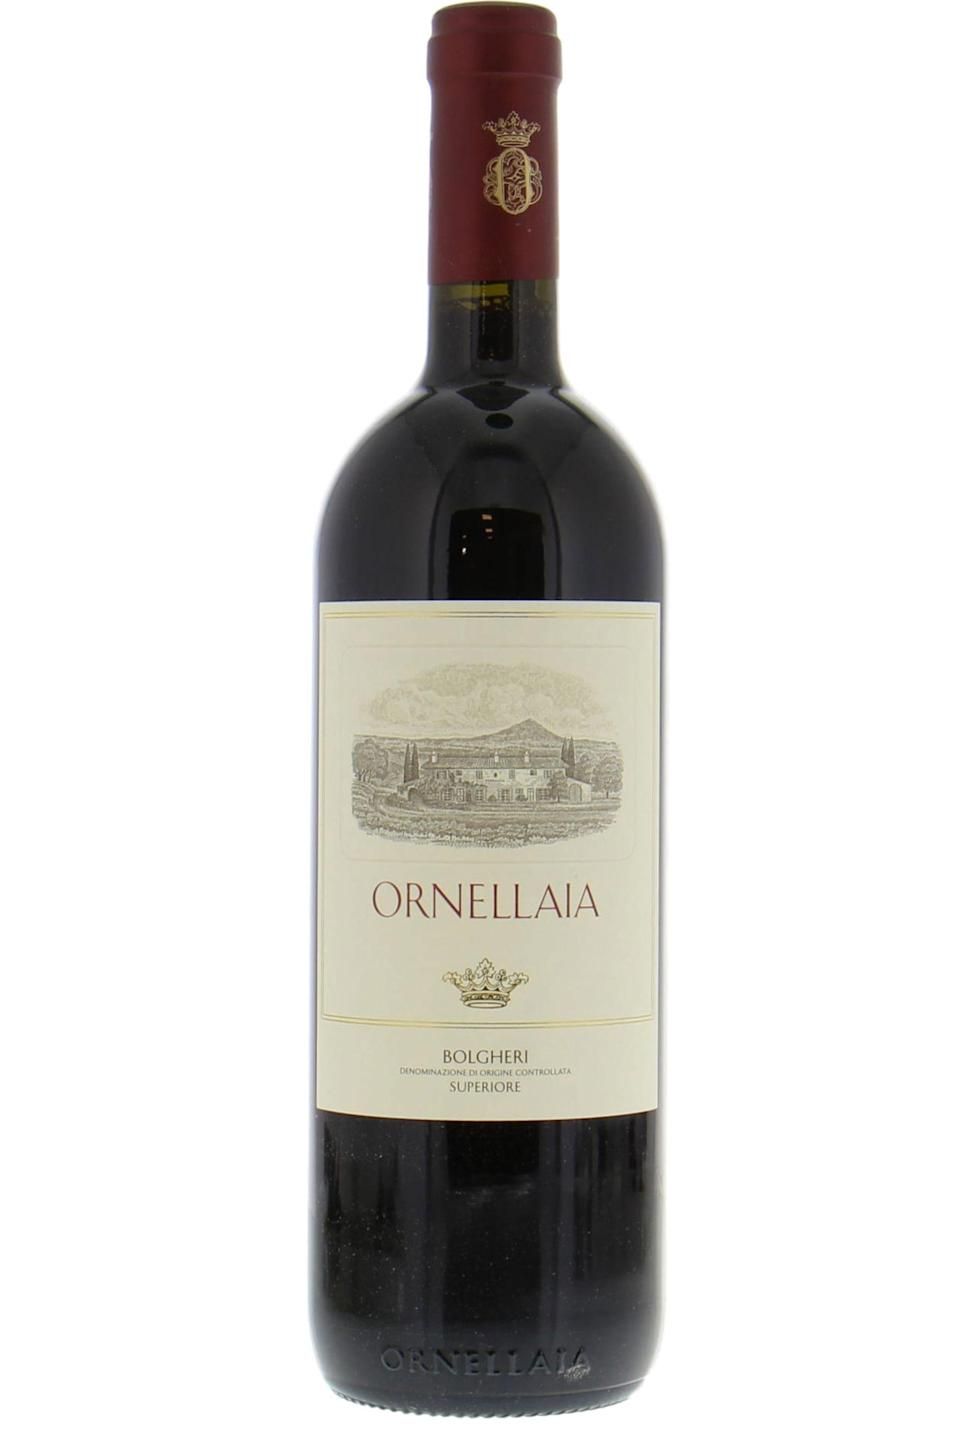 """<p>wine.com</p><p><strong>$569.97</strong></p><p><a href=""""https://go.redirectingat.com?id=74968X1596630&url=https%3A%2F%2Fwww.wine.com%2Fproduct%2Fornellaia-15-liter-magnum-2016%2F523180&sref=https%3A%2F%2Fwww.townandcountrymag.com%2Fstyle%2Fmens-fashion%2Fnews%2Fg2335%2Fbest-fathers-day-gifts%2F"""" rel=""""nofollow noopener"""" target=""""_blank"""" data-ylk=""""slk:Shop Now"""" class=""""link rapid-noclick-resp"""">Shop Now</a></p><p>If your father is a wine collector, you might want to steer him toward a magnum. Not only does wine age more slowly in the larger format, it's also just more fun to pour from the bottle.</p>"""